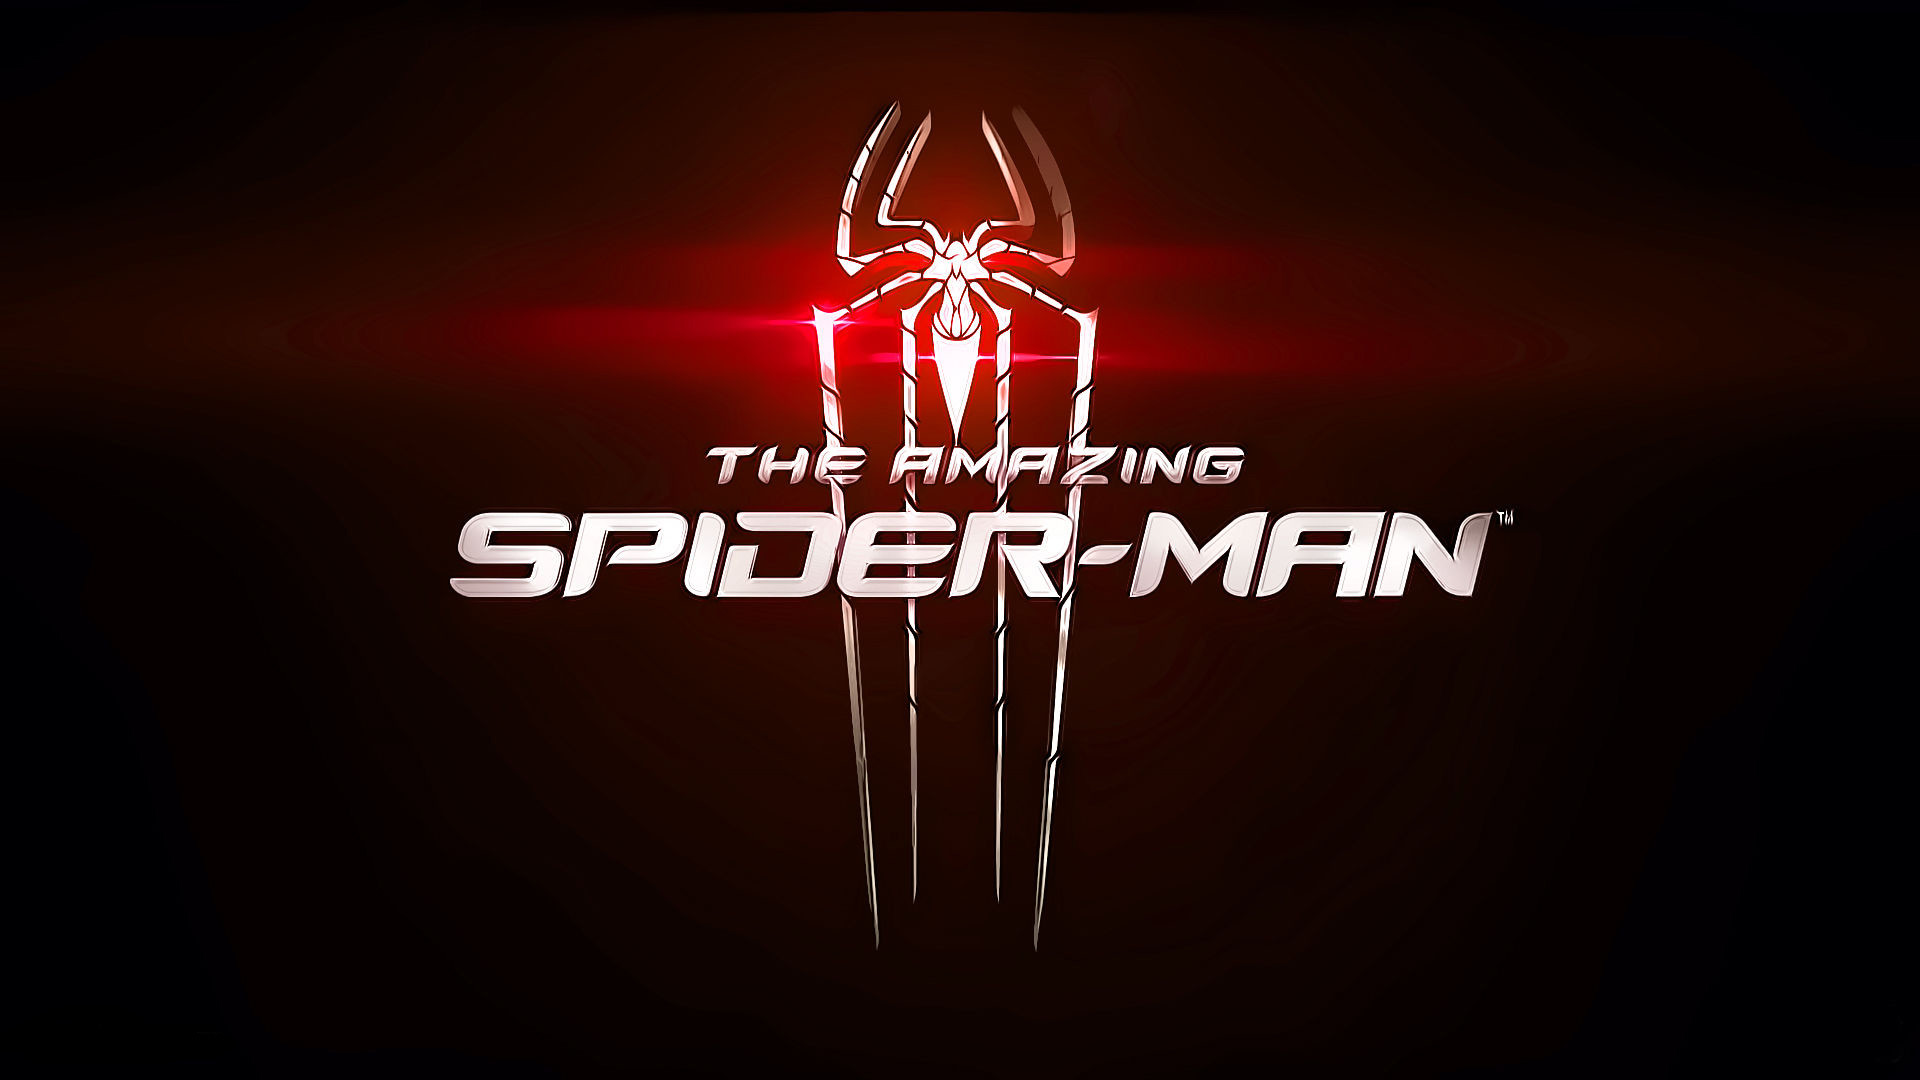 Spiderman Logo Wallpapers for Computer 299 – HD Wallpapers Site